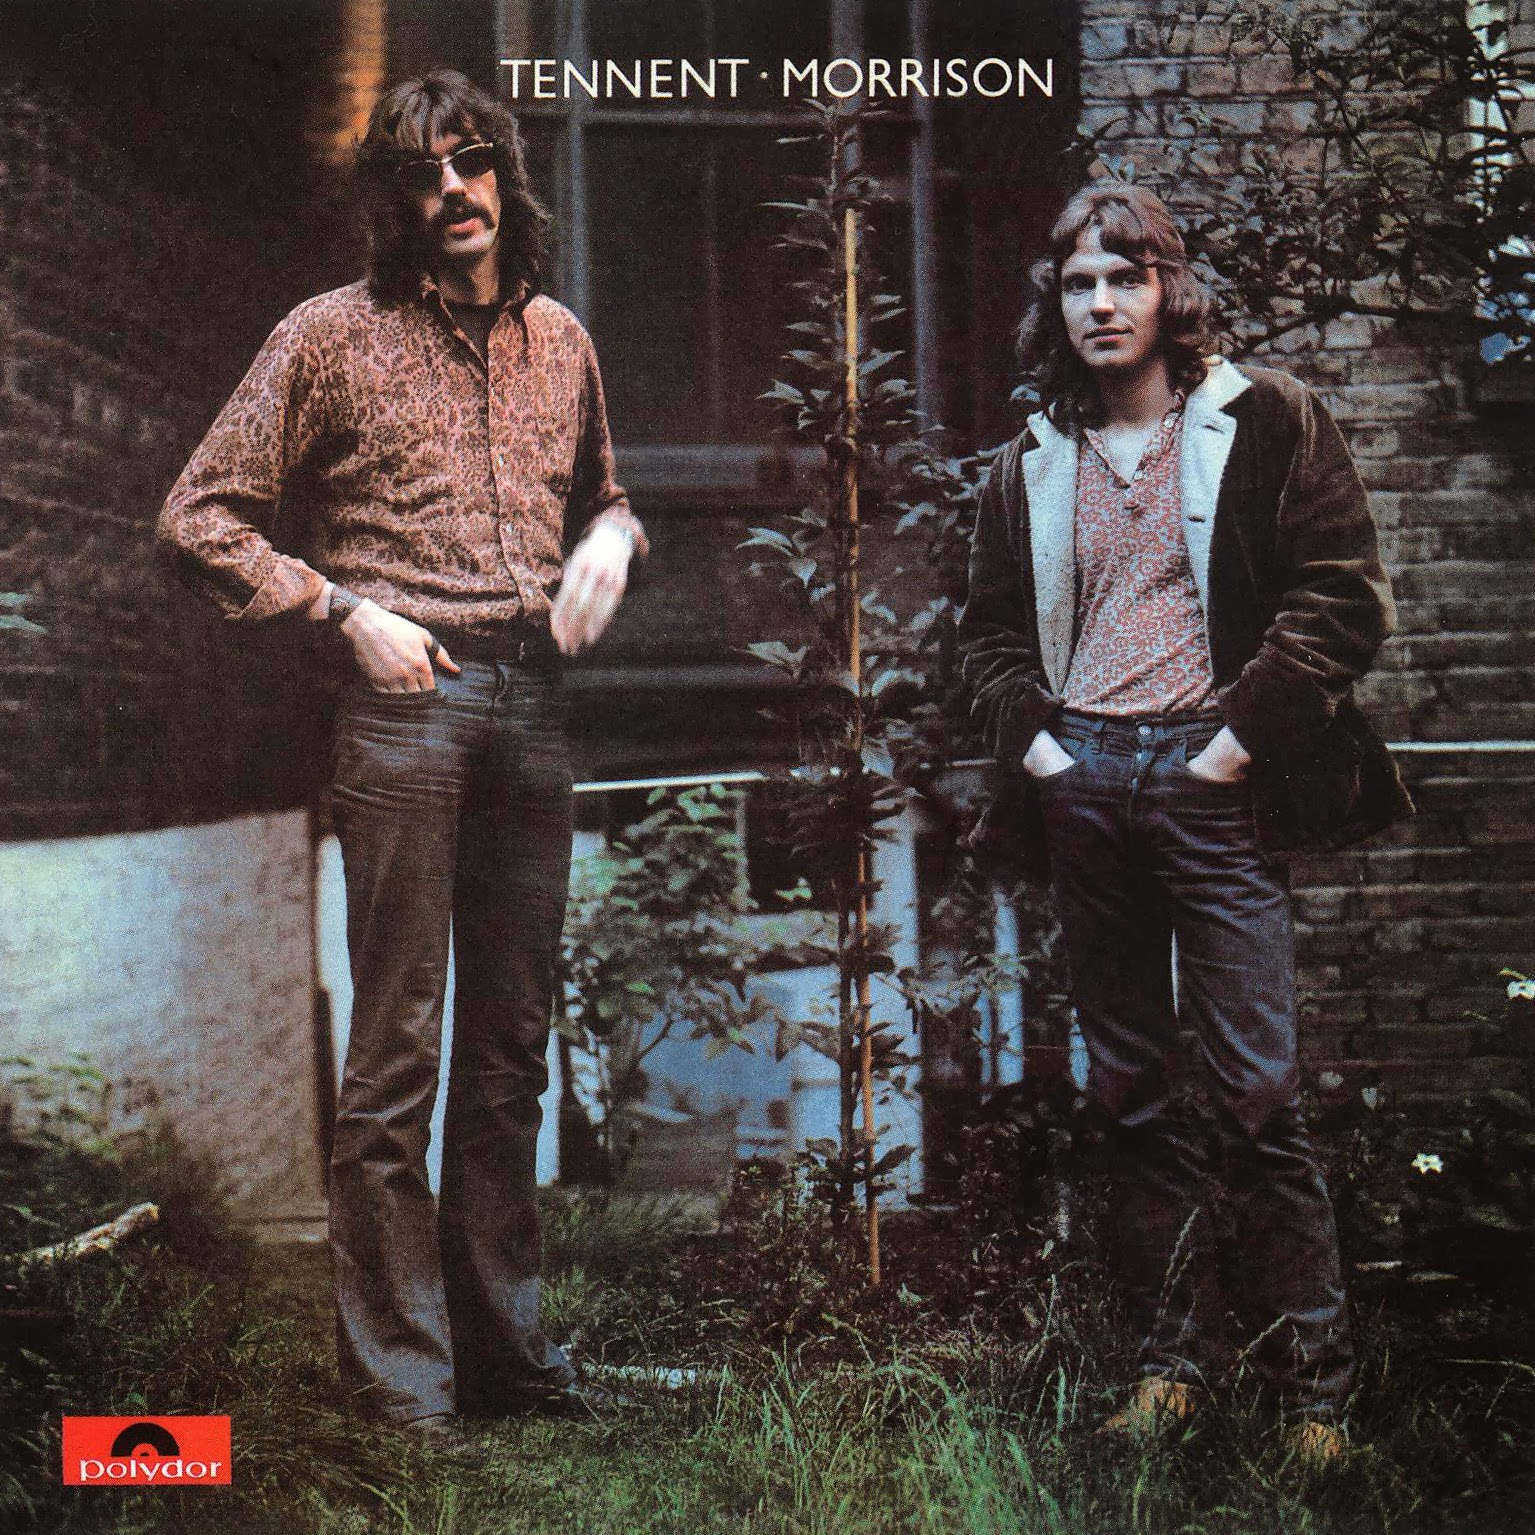 John Tennent and David Morrison